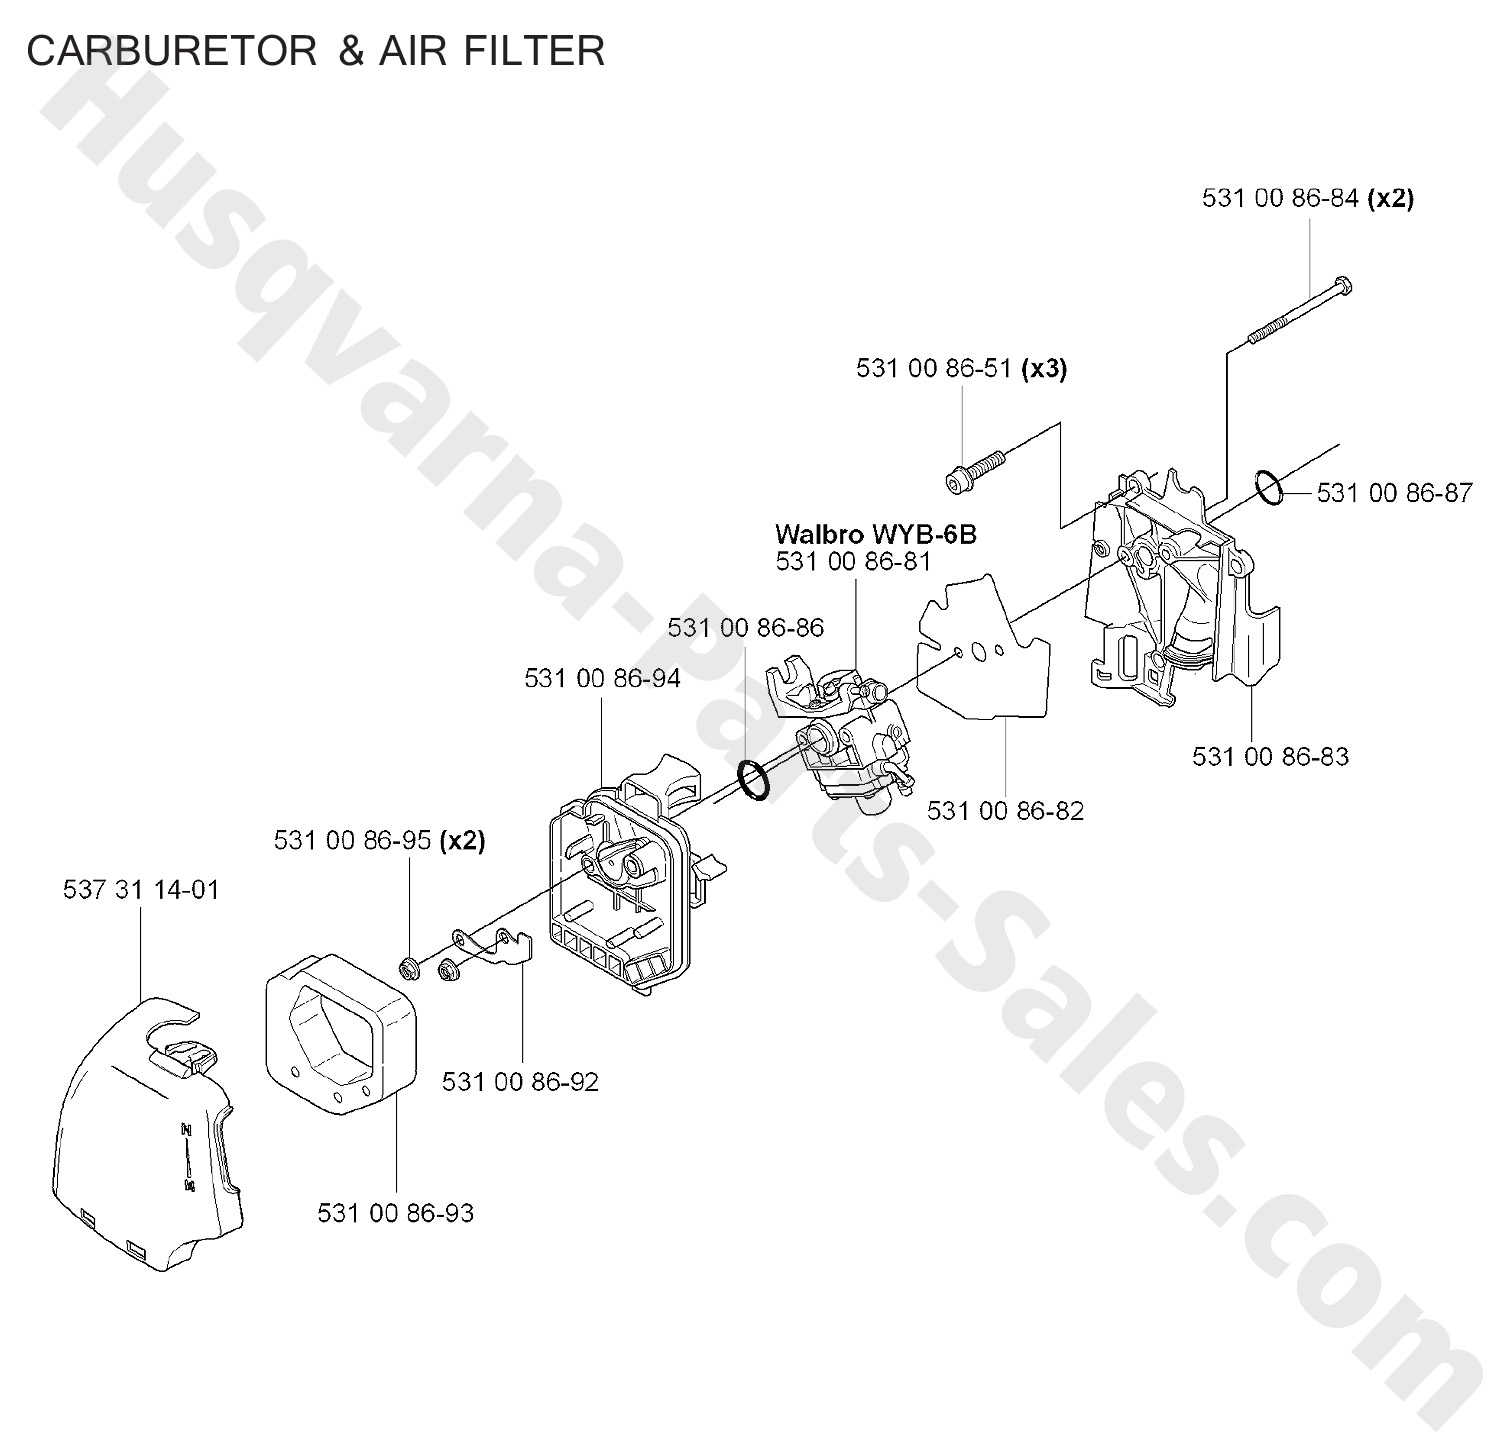 Fuel System Group 8 20 143 as well Small Engine Electric Starter Diagram also Wiring Diagram furthermore Scag Mower Engine Diagram as well John Deere 5200 Parts Diagram. on toro lawn mower fuel filter